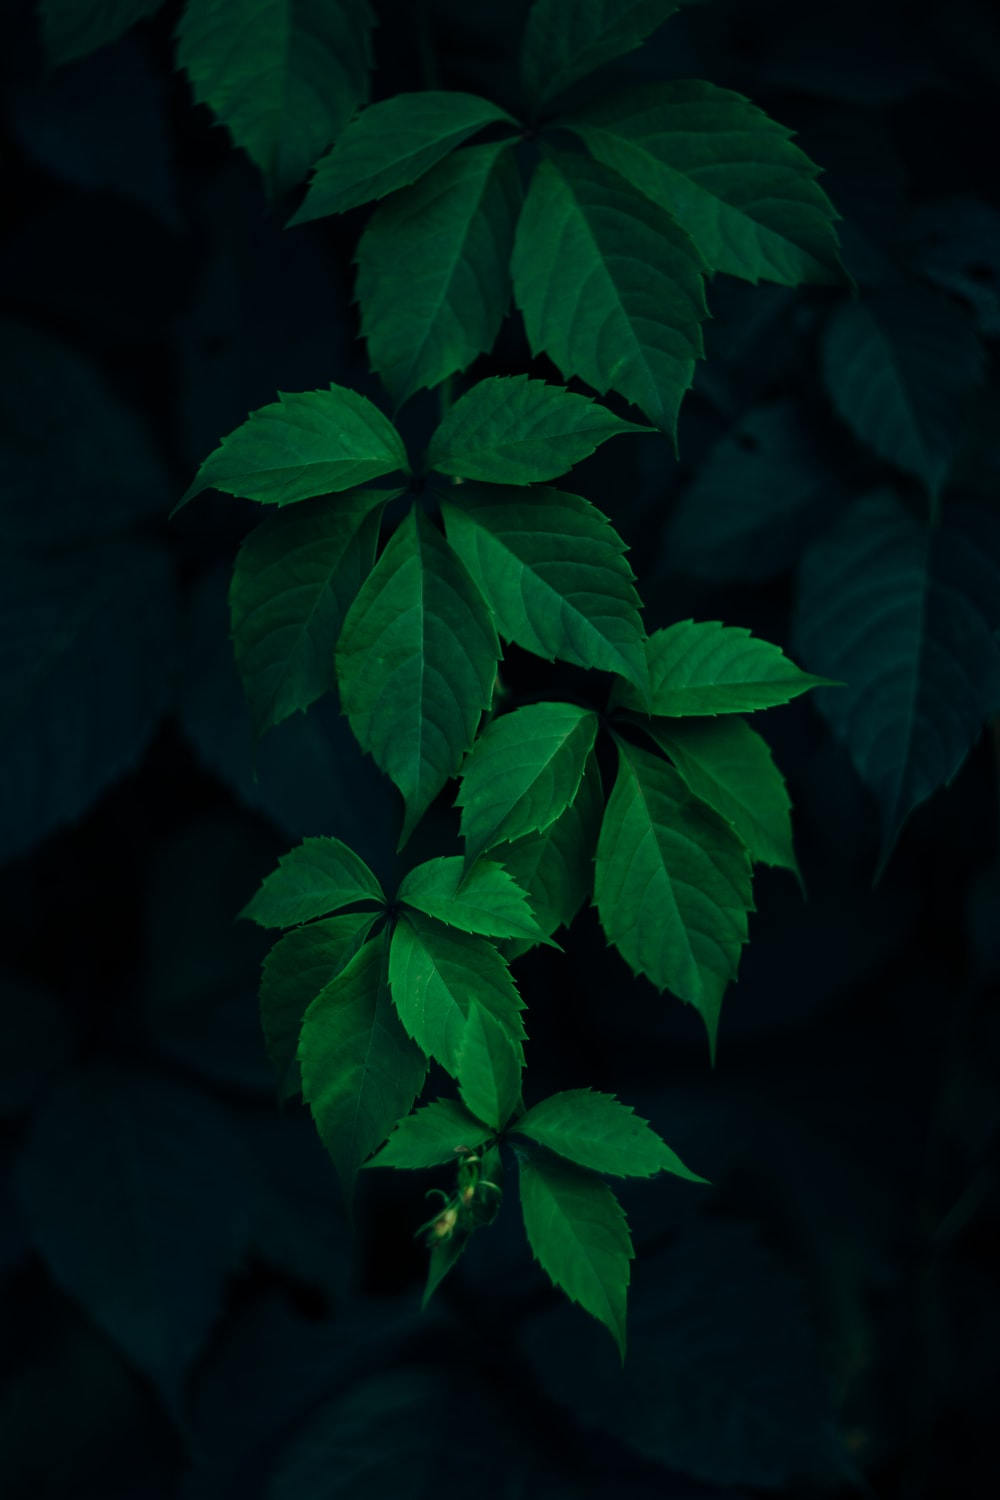 750 Leaves Pictures Download Free Images On Unsplash